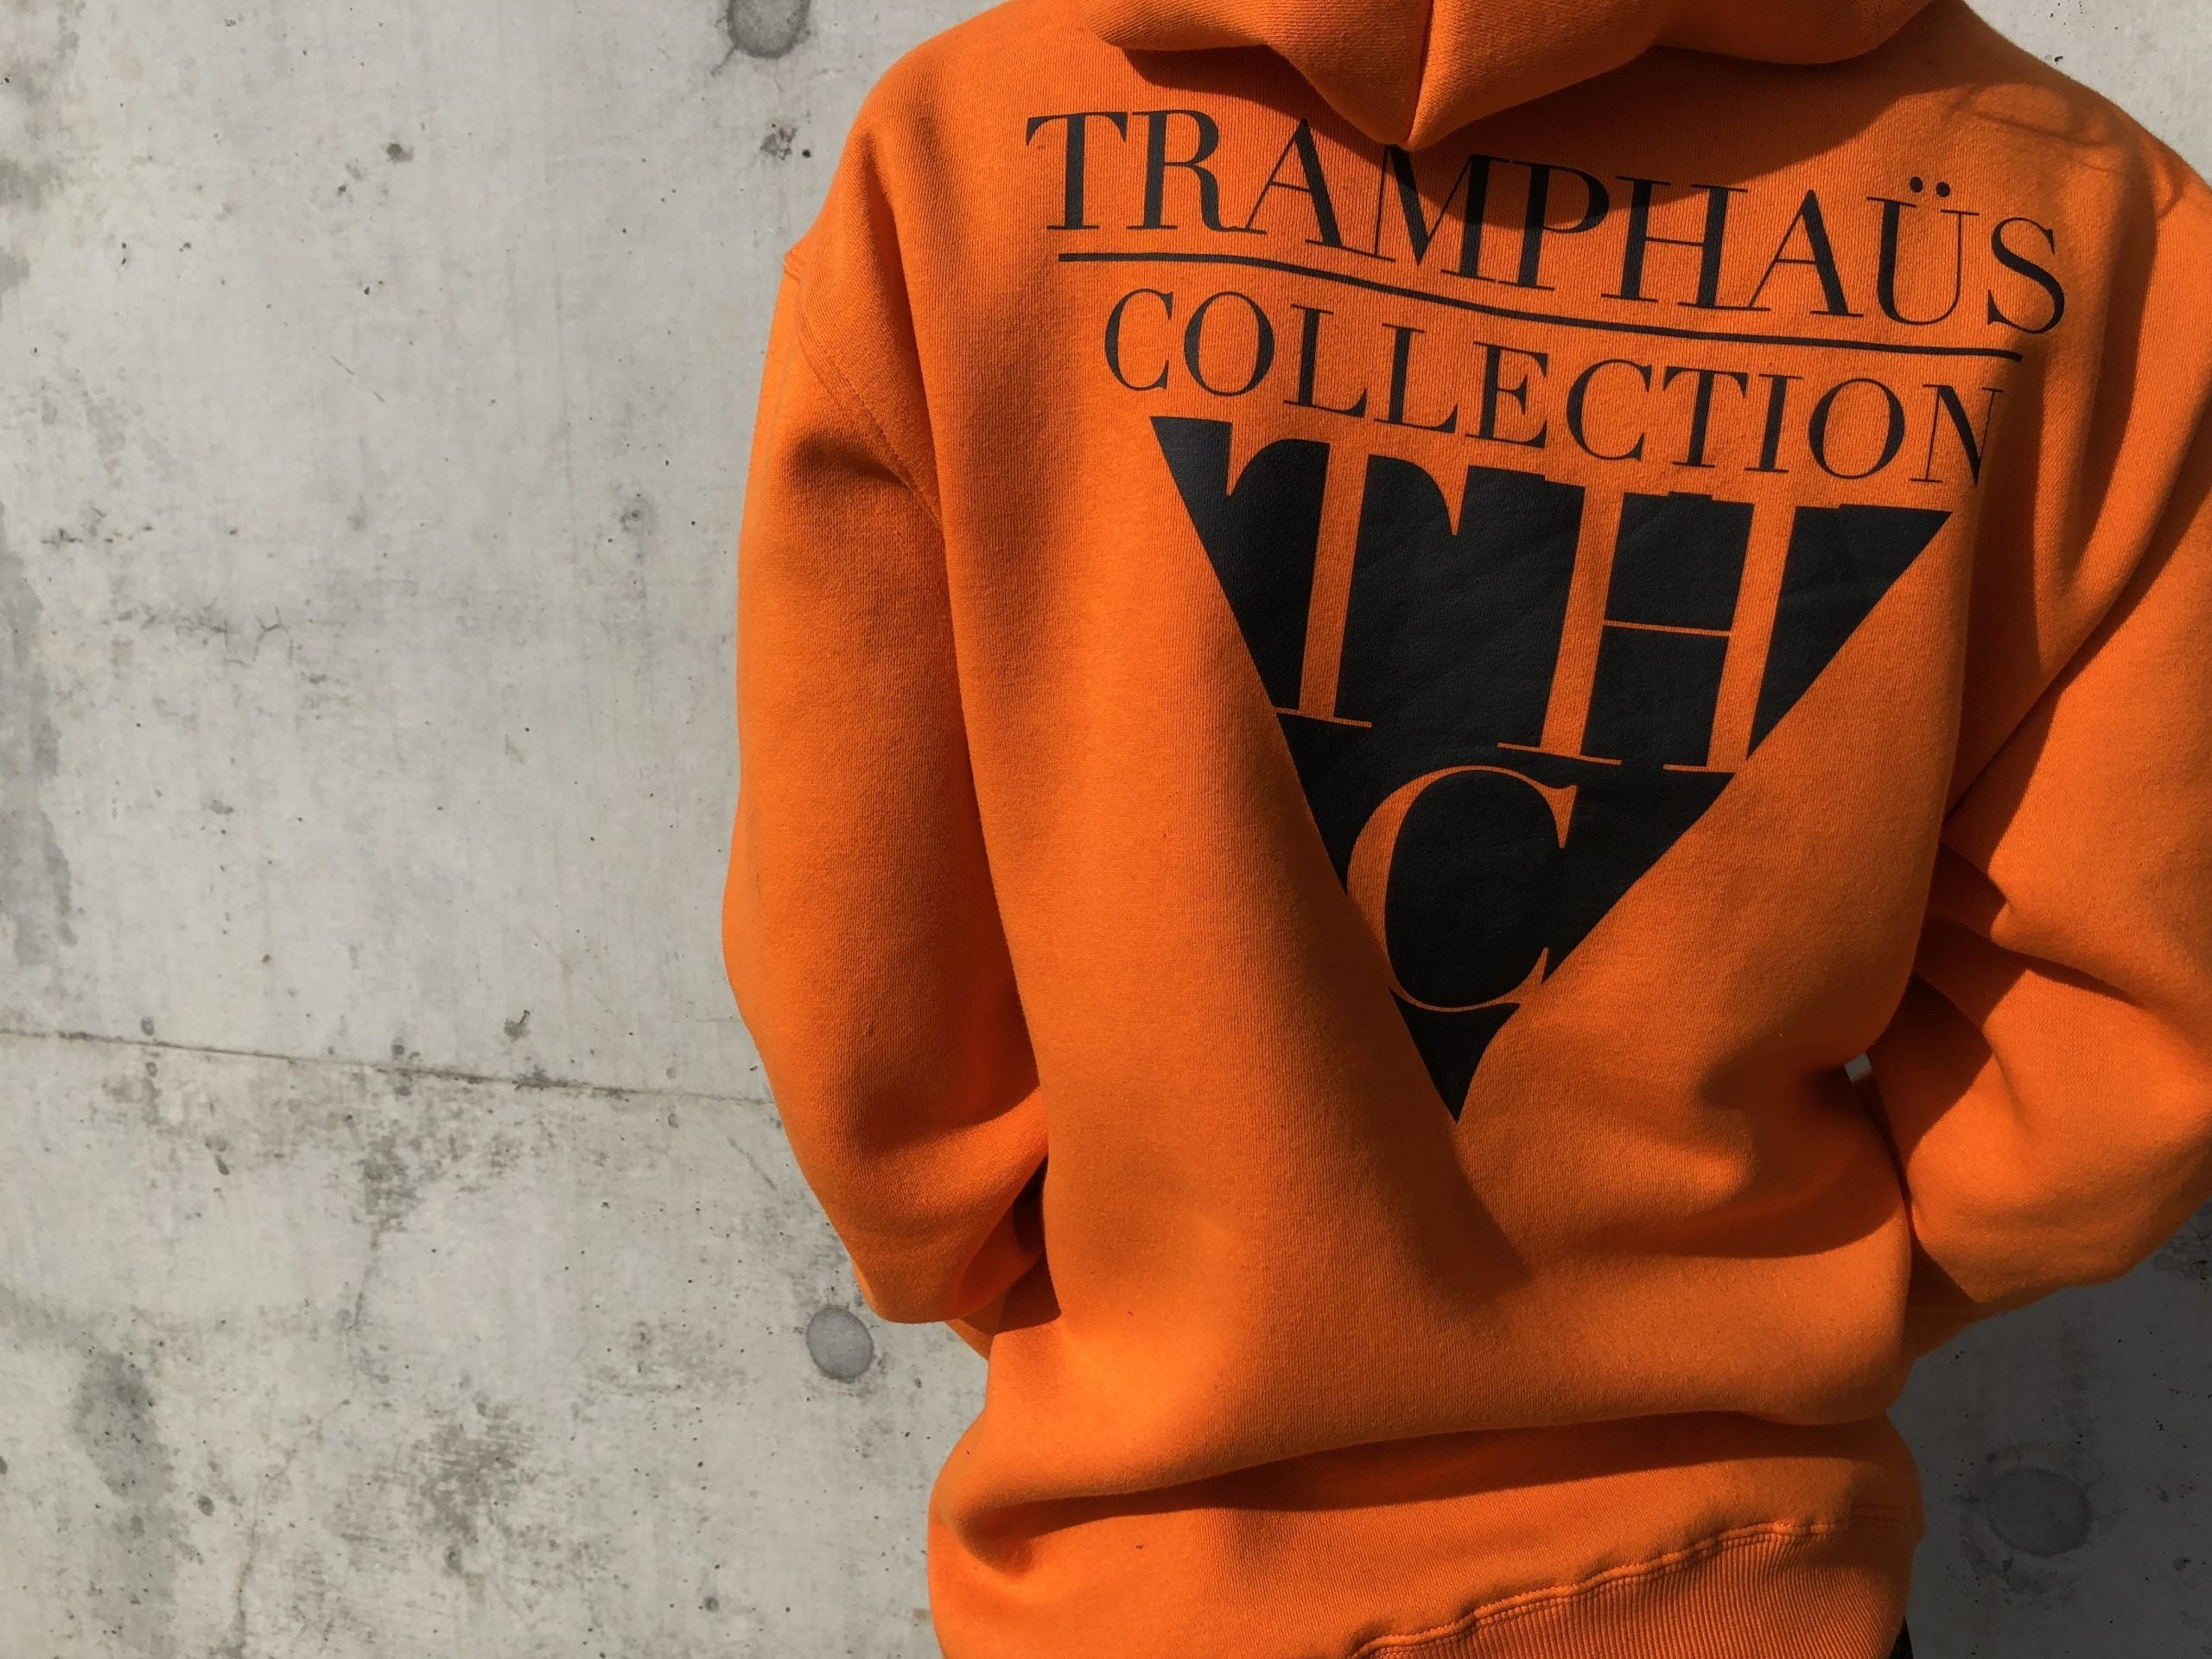 *KOLOÜRDROP* ORANGE VOGUE HOODIE - TRAMPHAÜS LONDON